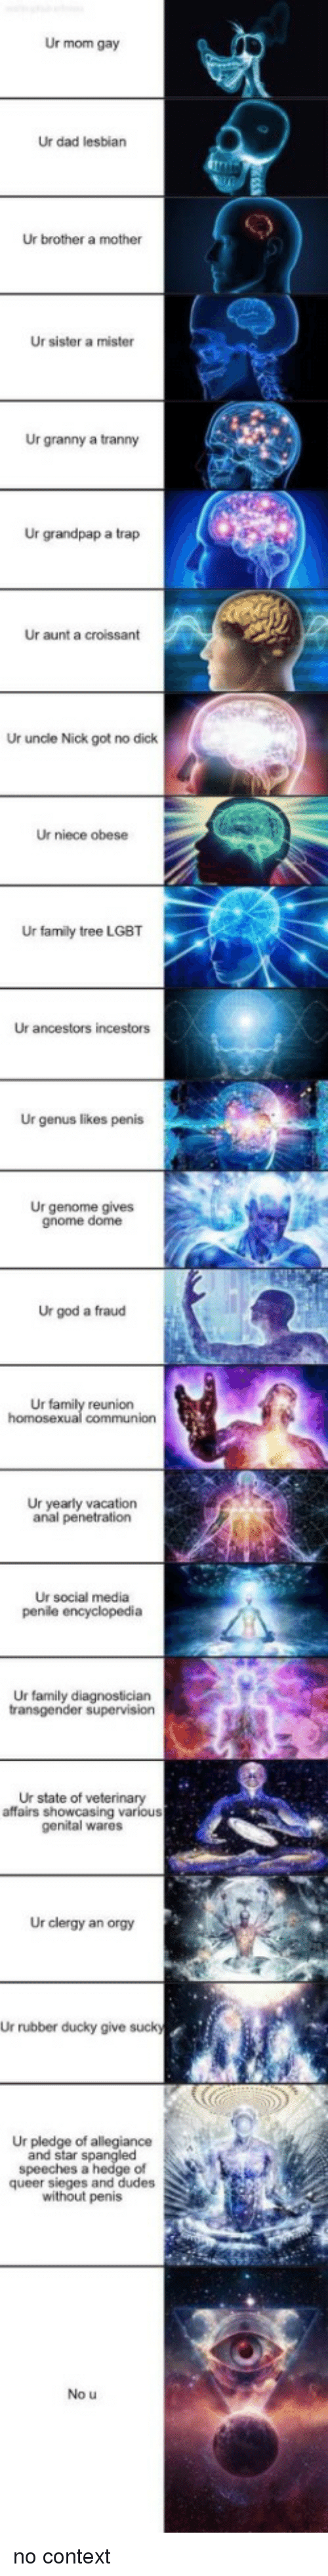 A Trap: Ur mom gay  Ur dad lesbian  Ur brother a mother  Ur sister a mister  Ur granny a tranny  Ur grandpap a trap  Ur aunt a croissant  Ur uncle Nick got no dick  Ur niece obese  Ur family tree LGBT  Ur ancestors incestors  Ur genus likes penis  Ur genome gives  gnome dome  Ur god a fraud  Ur  reunion  Ur yearly vacation  anal penetration  Ur social media  Ur family diagnostician  Ur state of veterinary  affairs showcasing various  genital wares  Ur clergy an orgy  Ur rubber ducky give suck  Ur pledge of allegiance  and star spangled  speeches a hedge of  queer sieges and dudes  without penis  No u no context